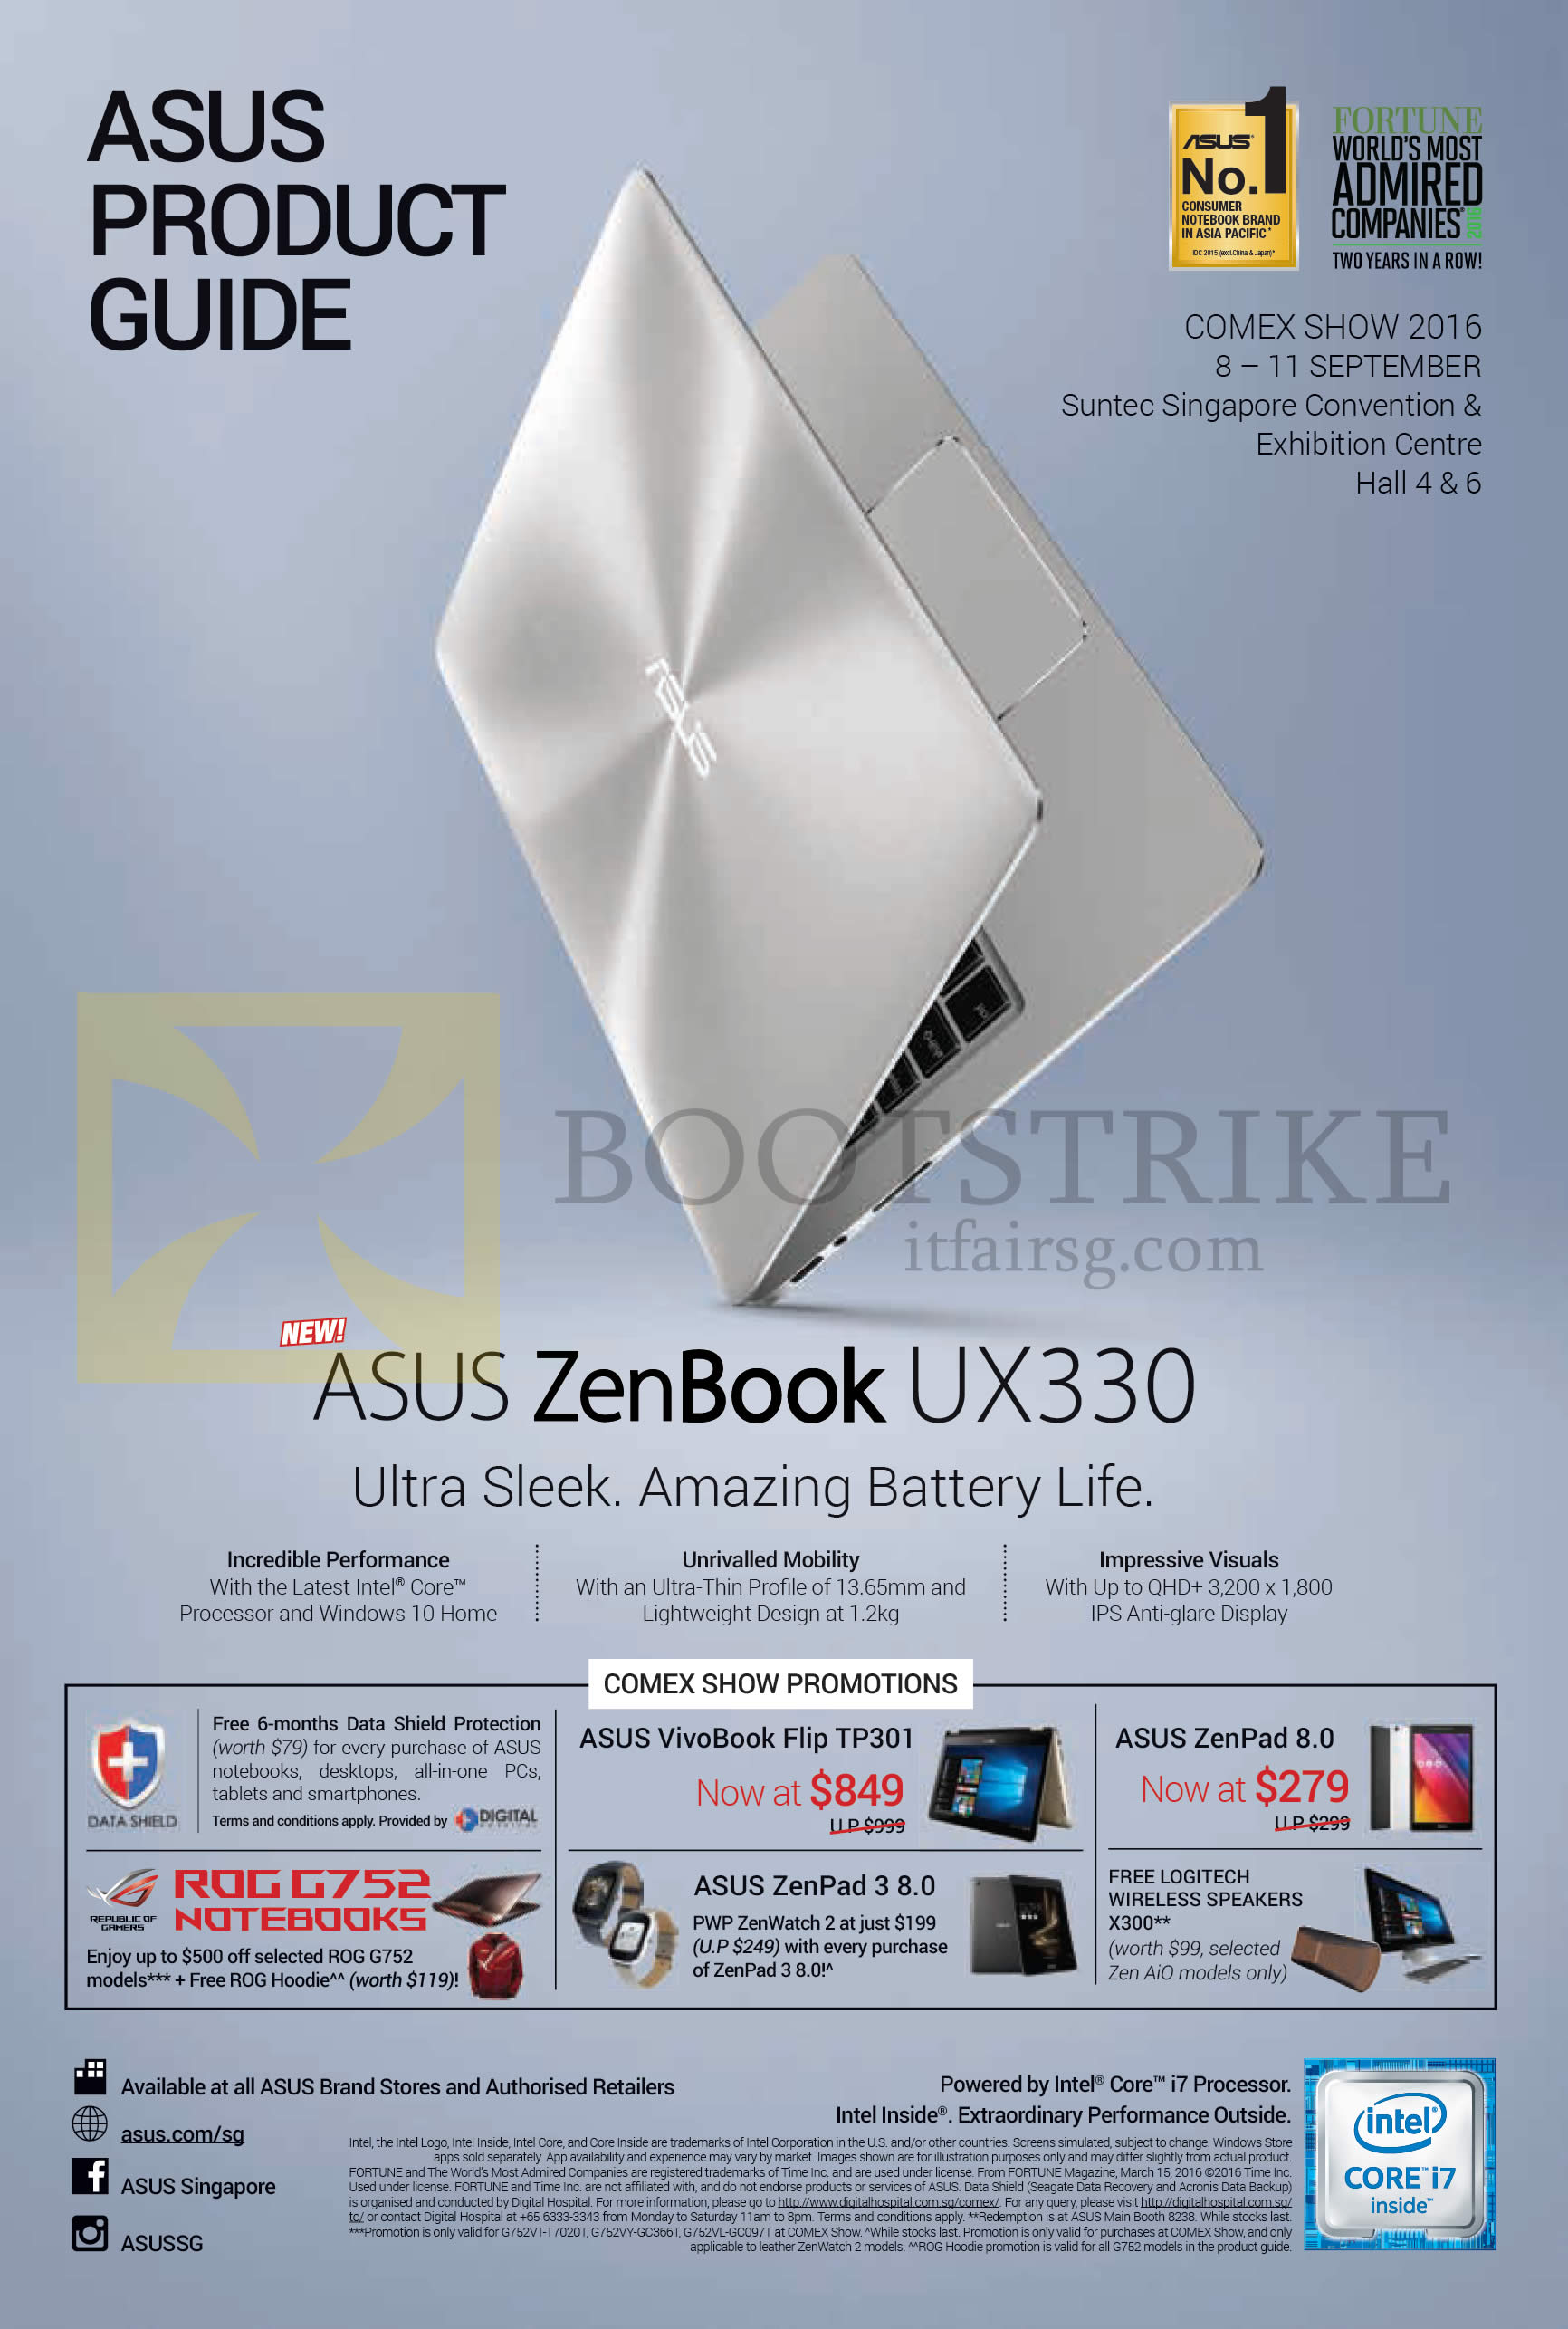 COMEX 2016 price list image brochure of ASUS Comex Show Promotions, Notebook Zenbook UX330 Series